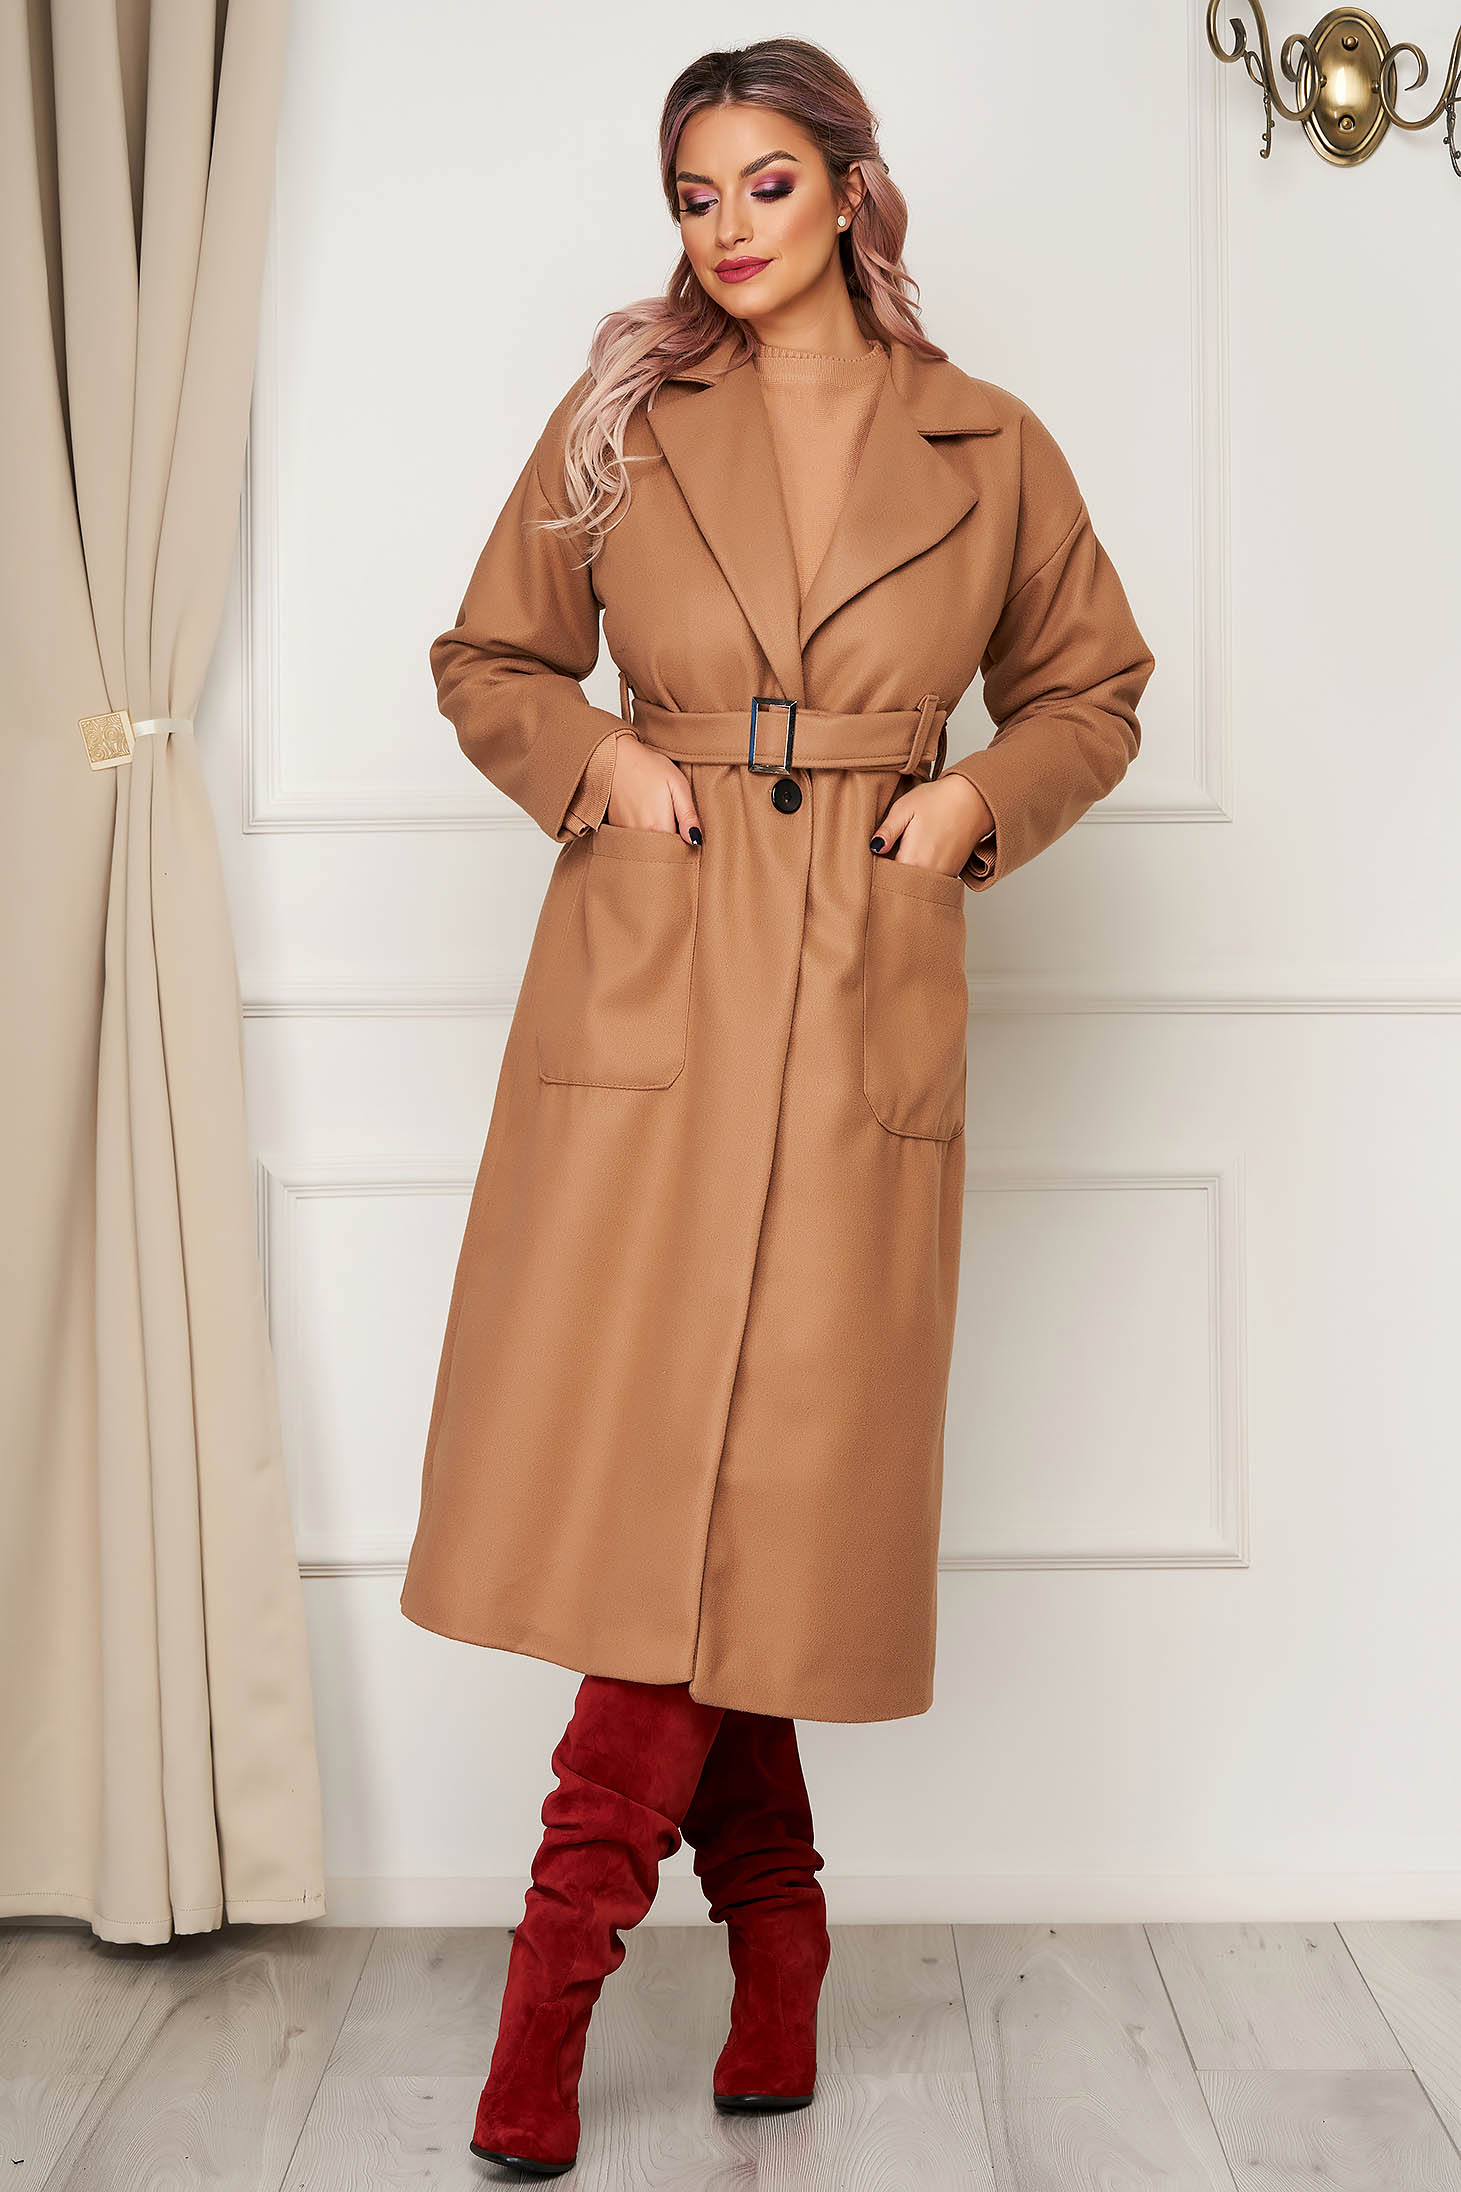 Elegant brown coat straight from non elastic fabric with pockets